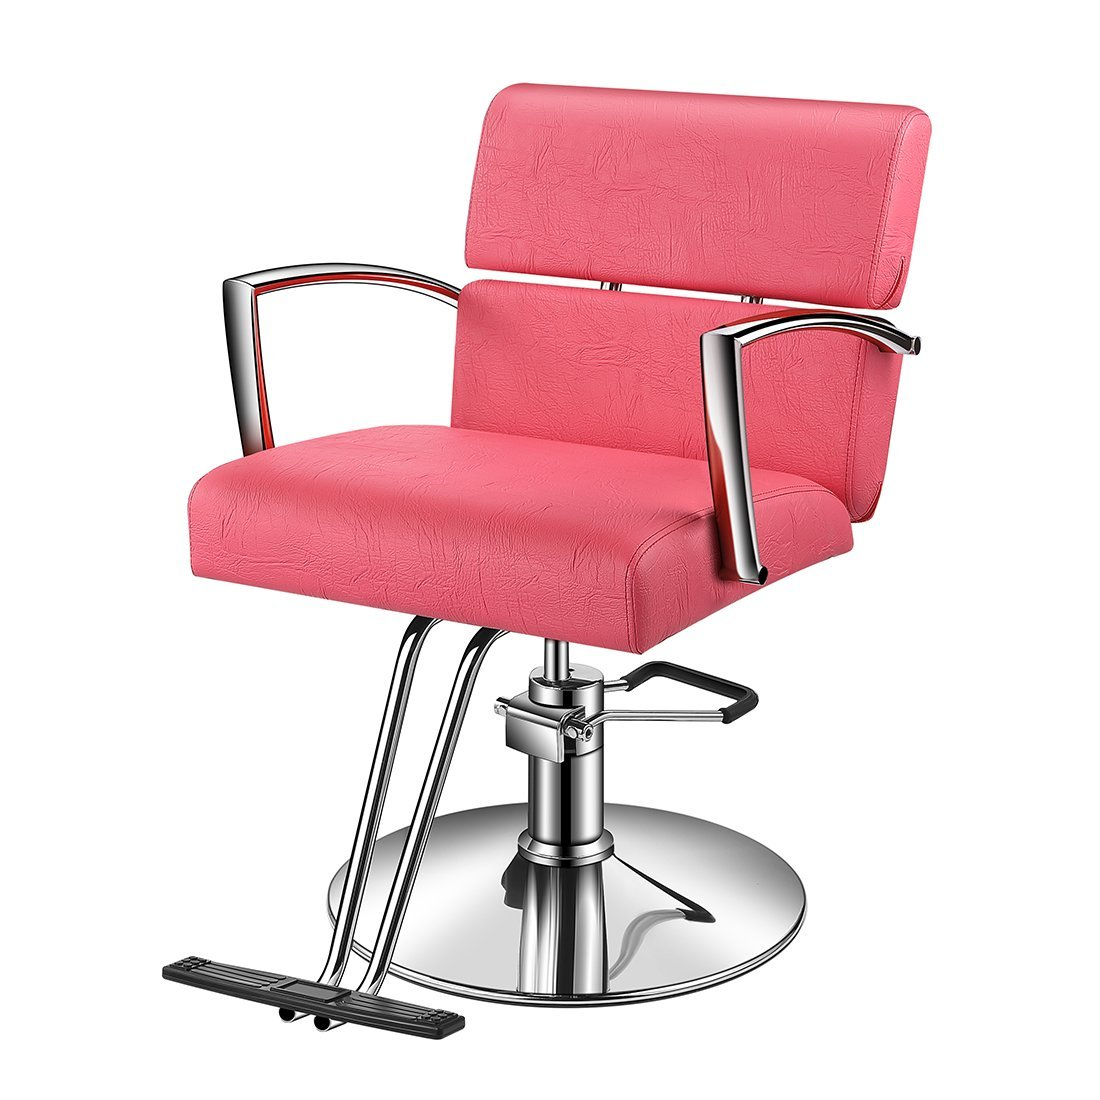 Outstanding Buy Baasha Hair Salon Chair Red With Hydraulic Pump Red Gmtry Best Dining Table And Chair Ideas Images Gmtryco